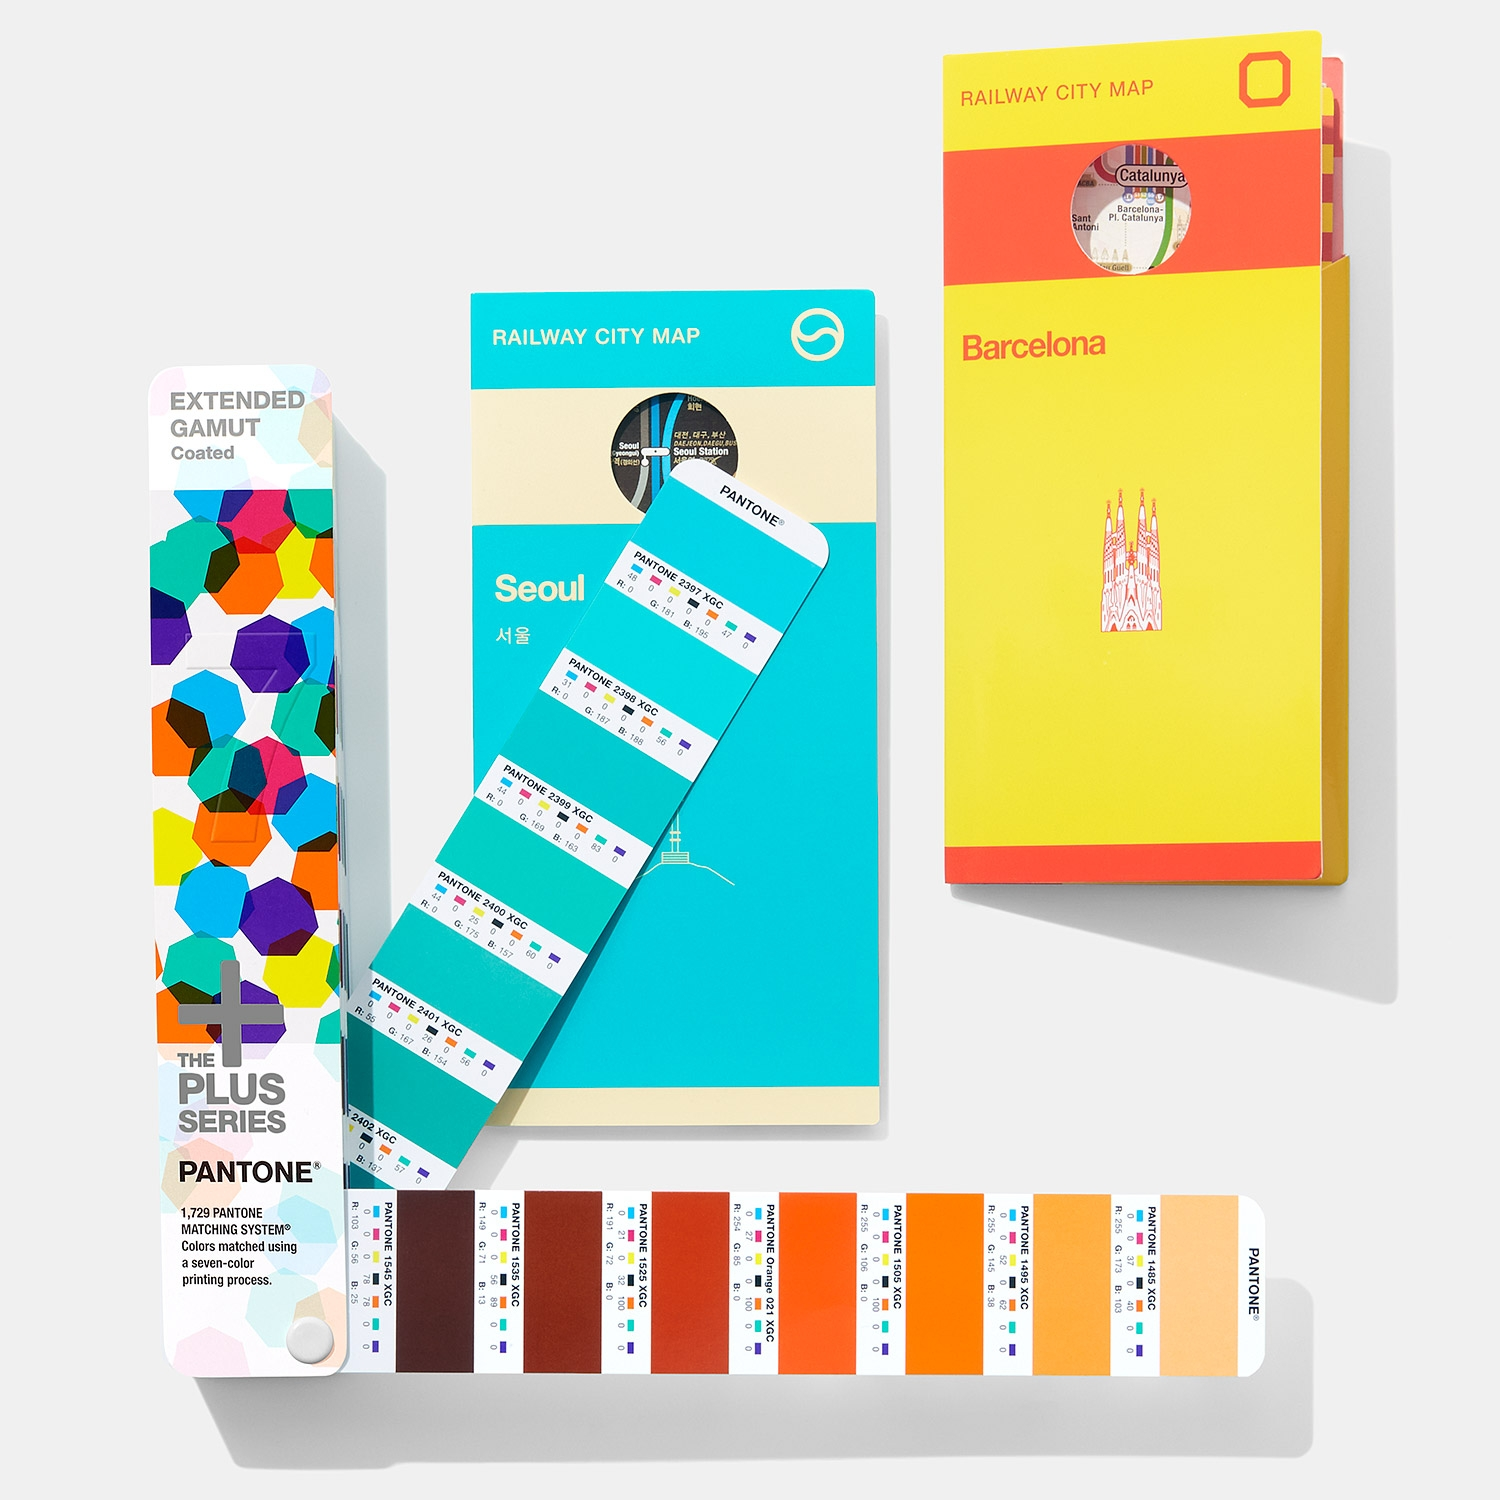 Pantone Extended Gamut Color Space Gamut Grid